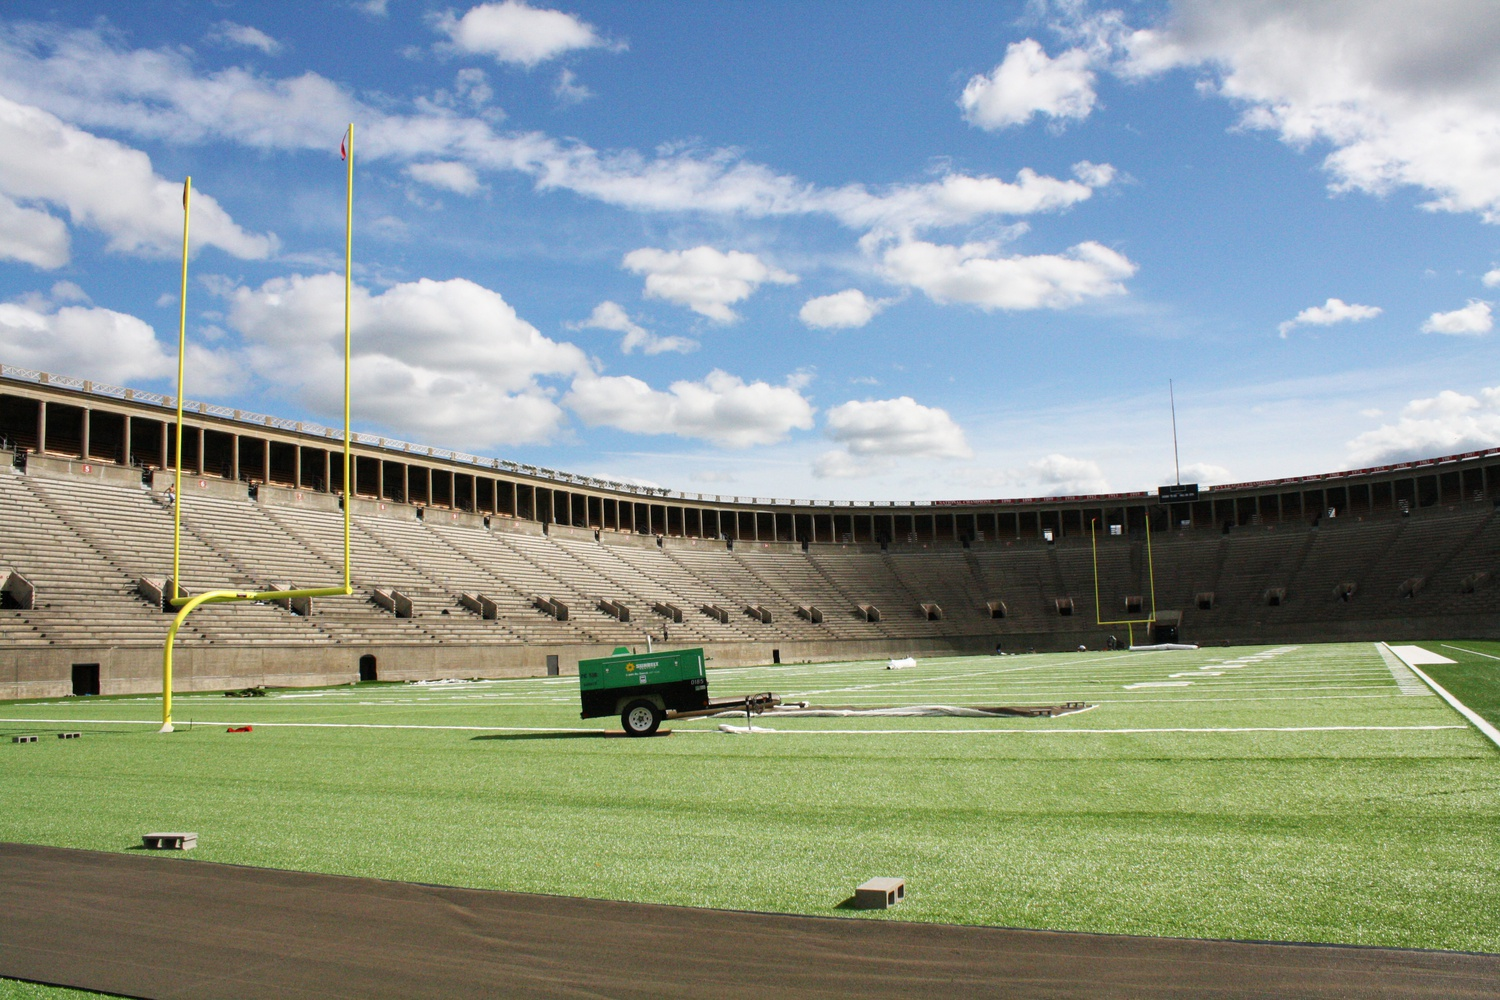 The proposal for Boston's 2024 Olympic bid plans to use Harvard Stadium for field hockey events.